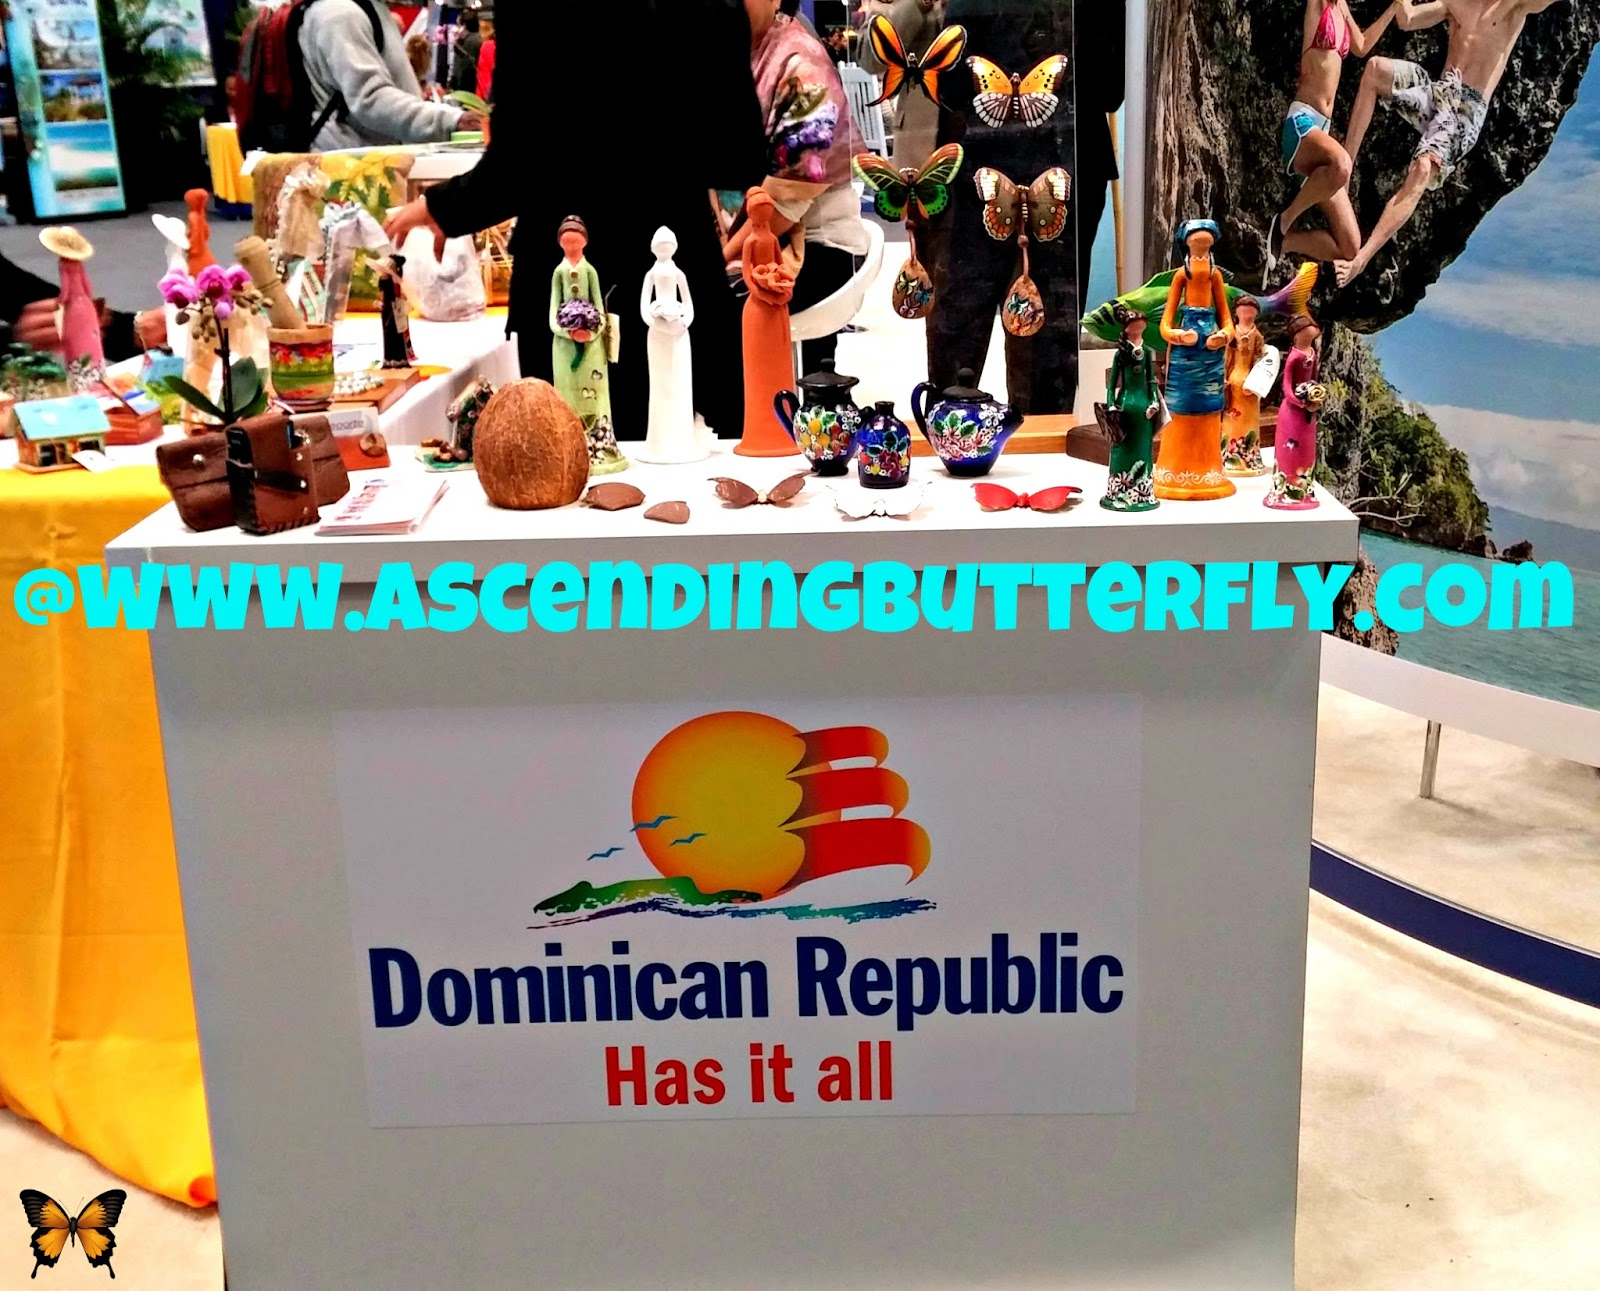 Dominican Republic Tourism Display at New York Times Travel Show